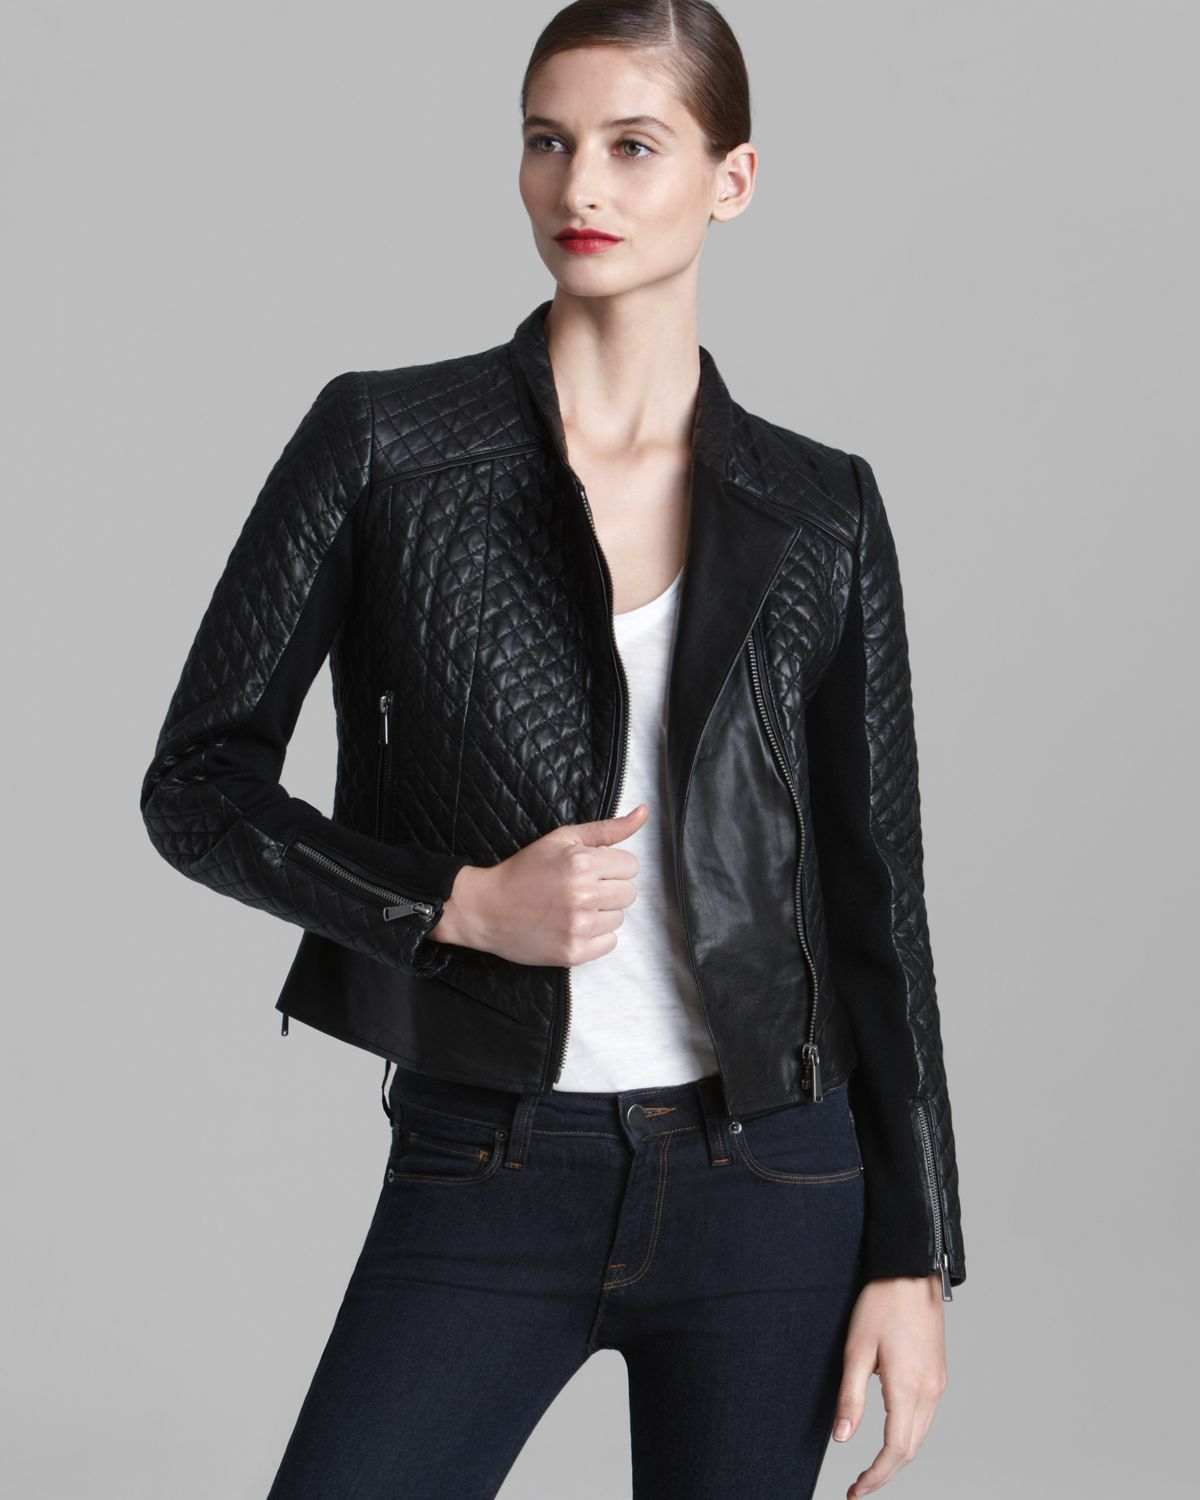 9a2c89ef3 Lyst - Kors by Michael Kors Leather Jacket - Quilted Moto Asymmetric ...